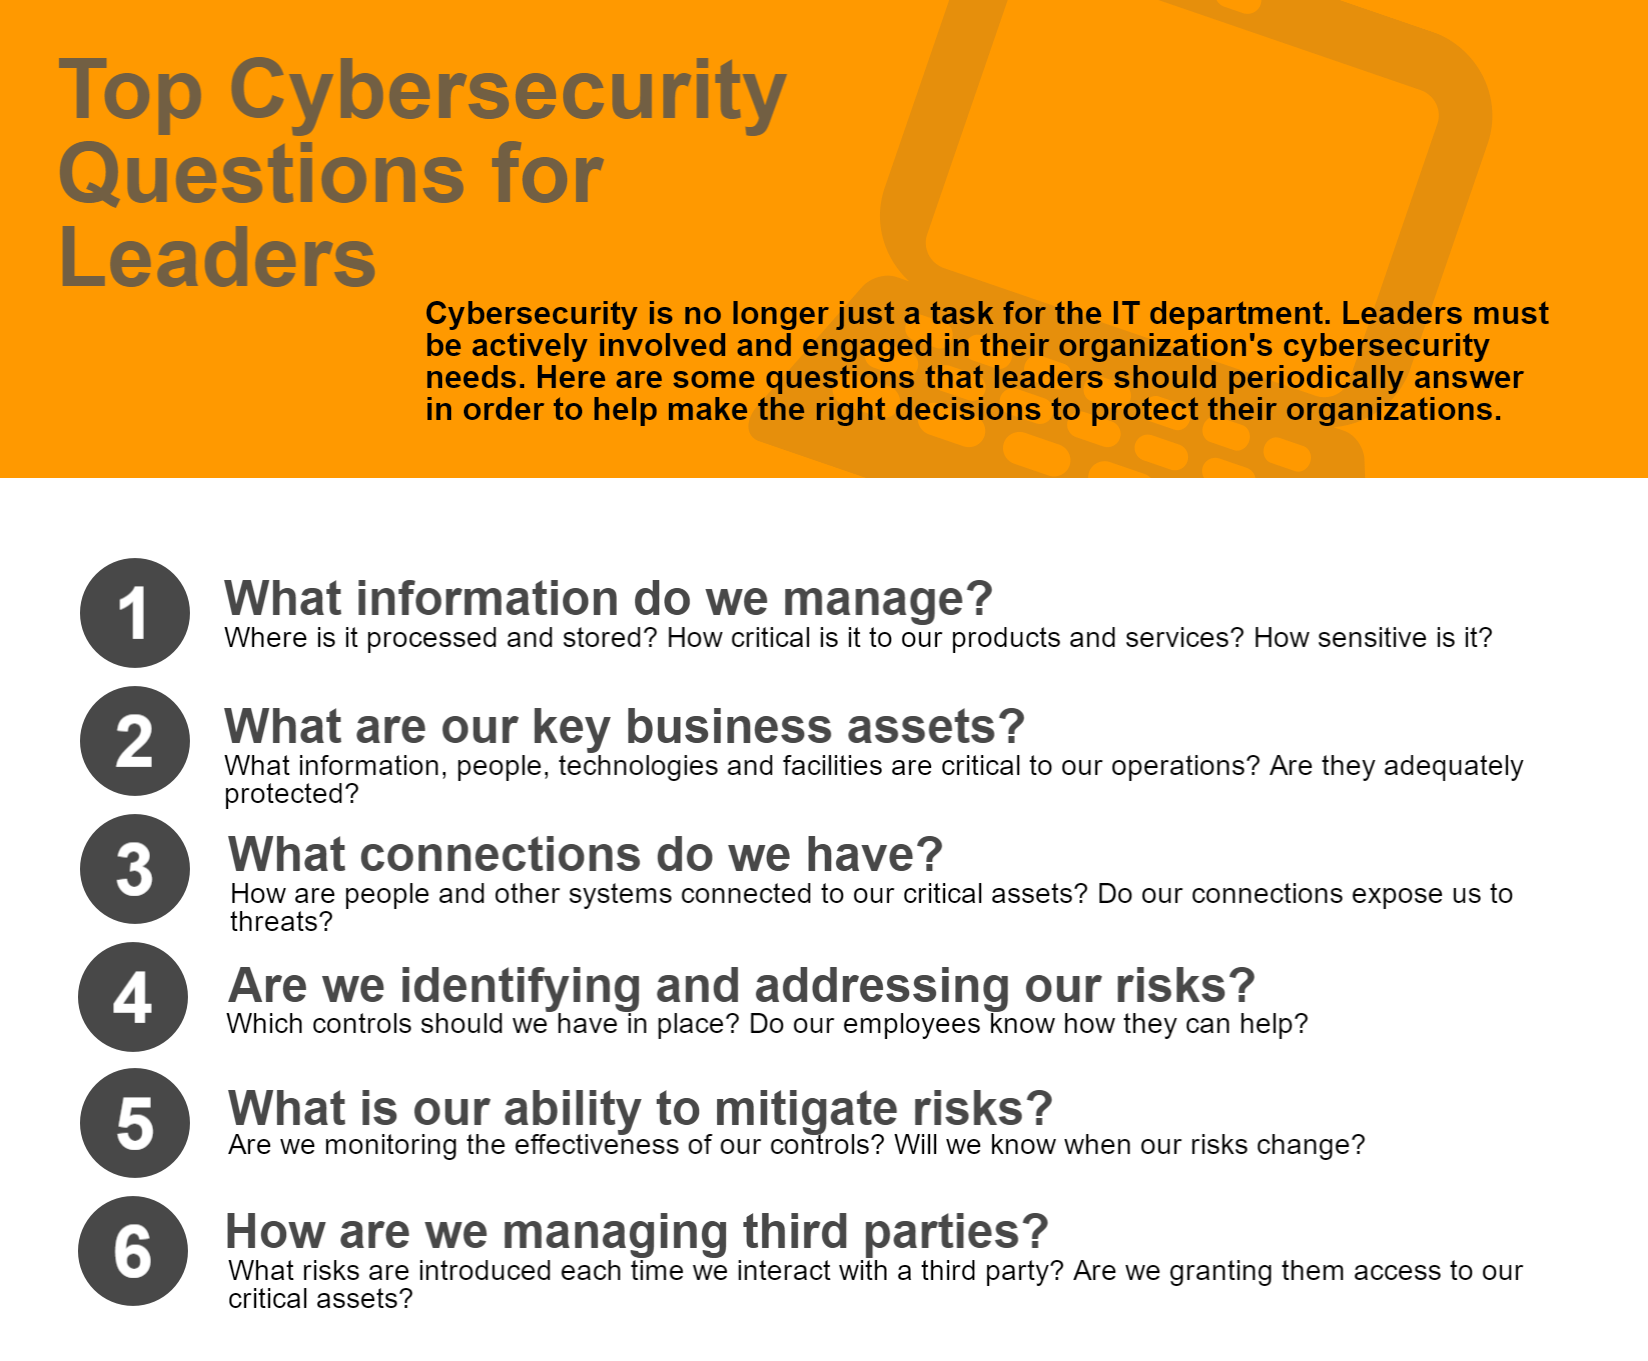 Top cybersecurity questions for leaders infographic